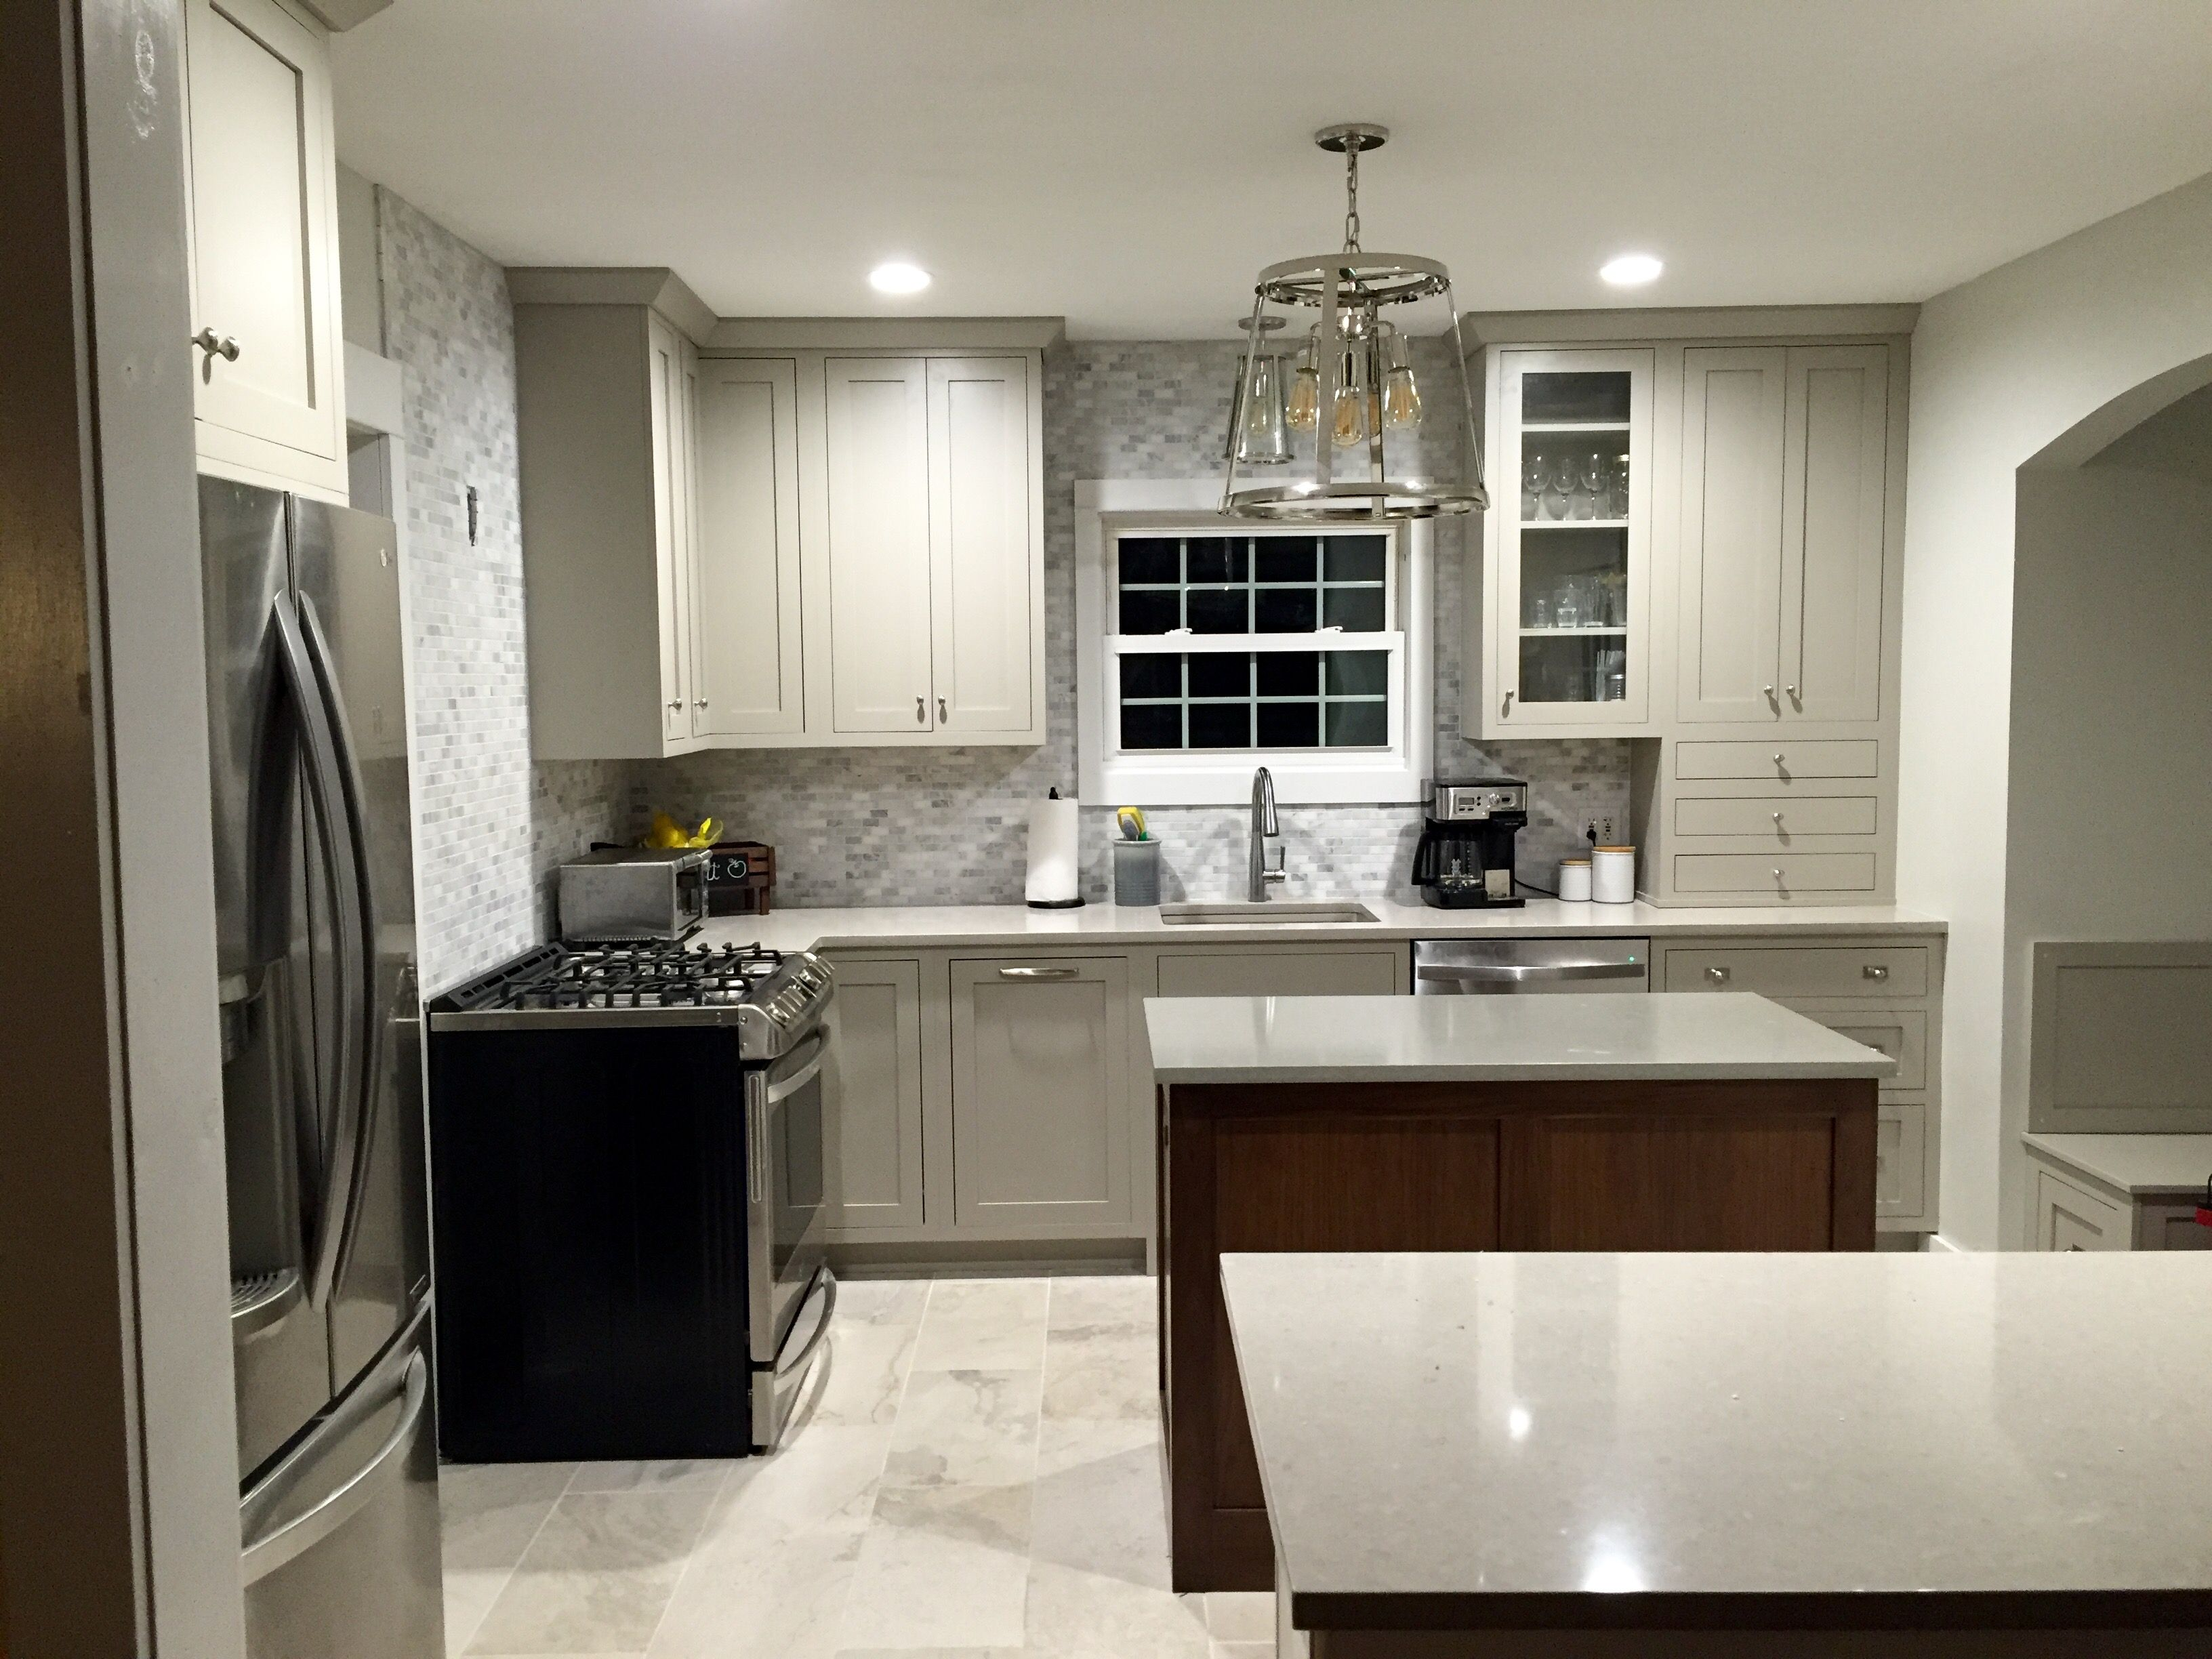 Grey Shaker Cabinets. Cottage Style Kitchen Conestoga Inset Shaker Cabinets.  Hearthstone Grey Perimeter.